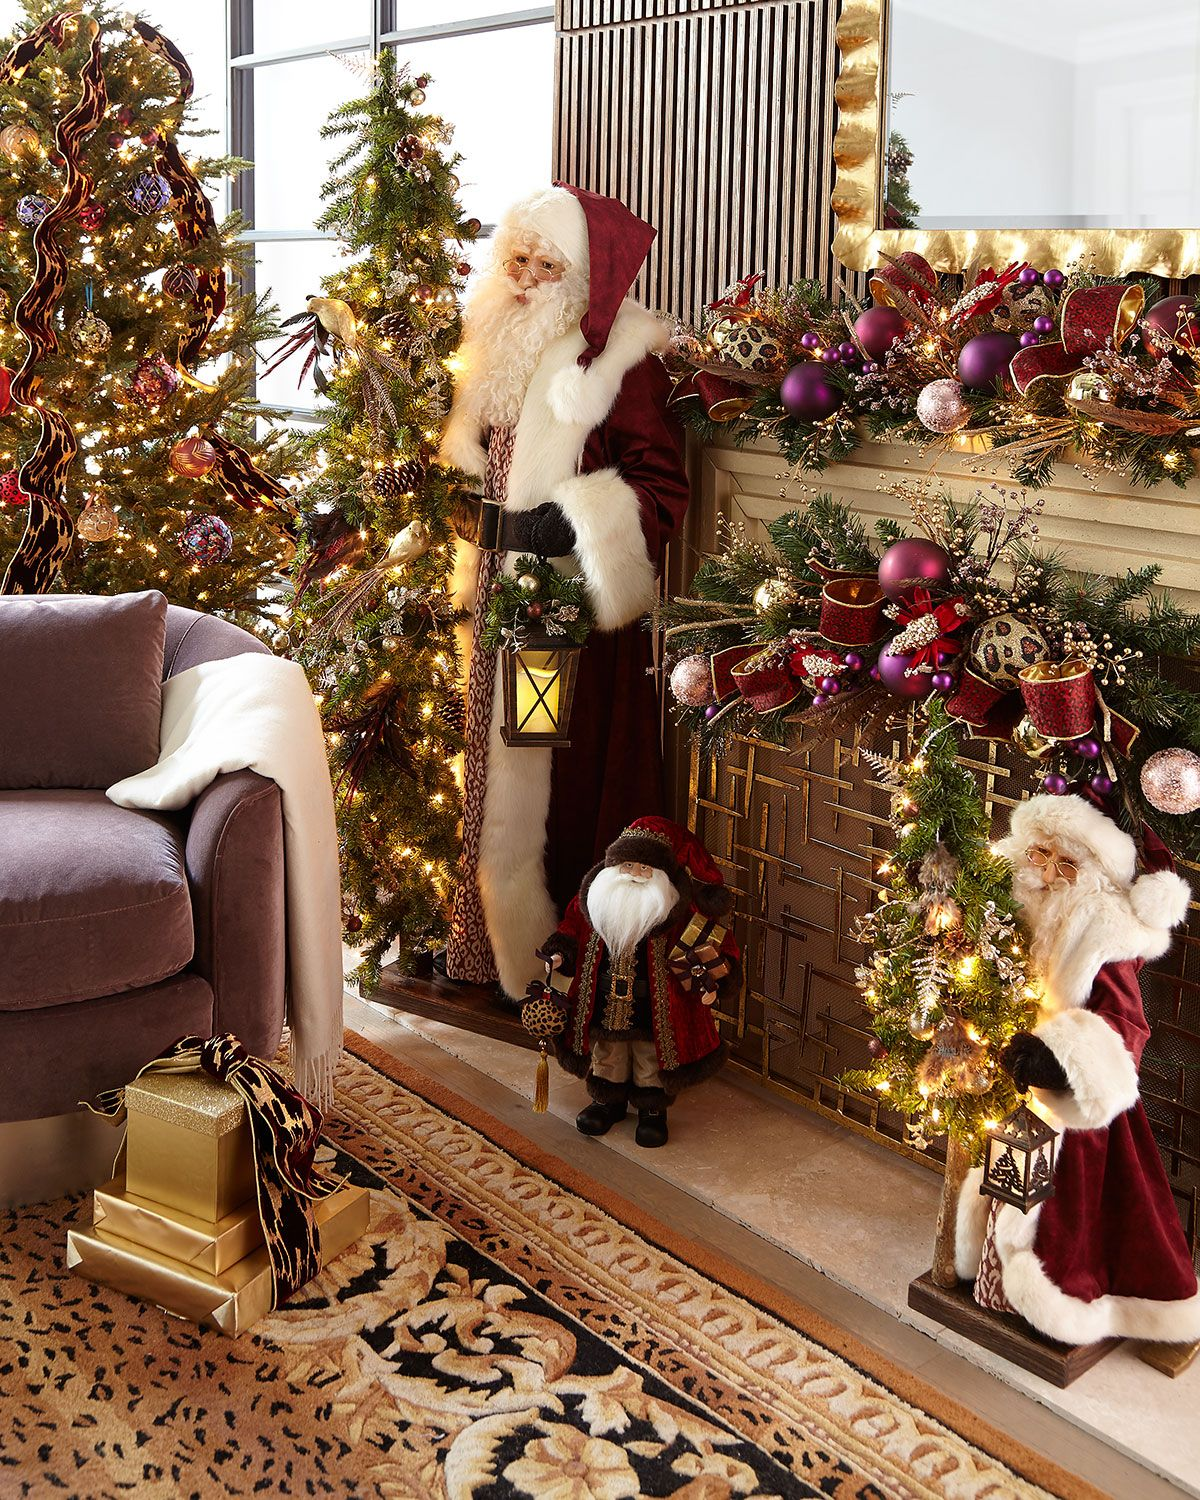 Plum Garden Christmas Eve 2020 Ditz Designs By The Hen House Plum Wine Holiday White Santa with